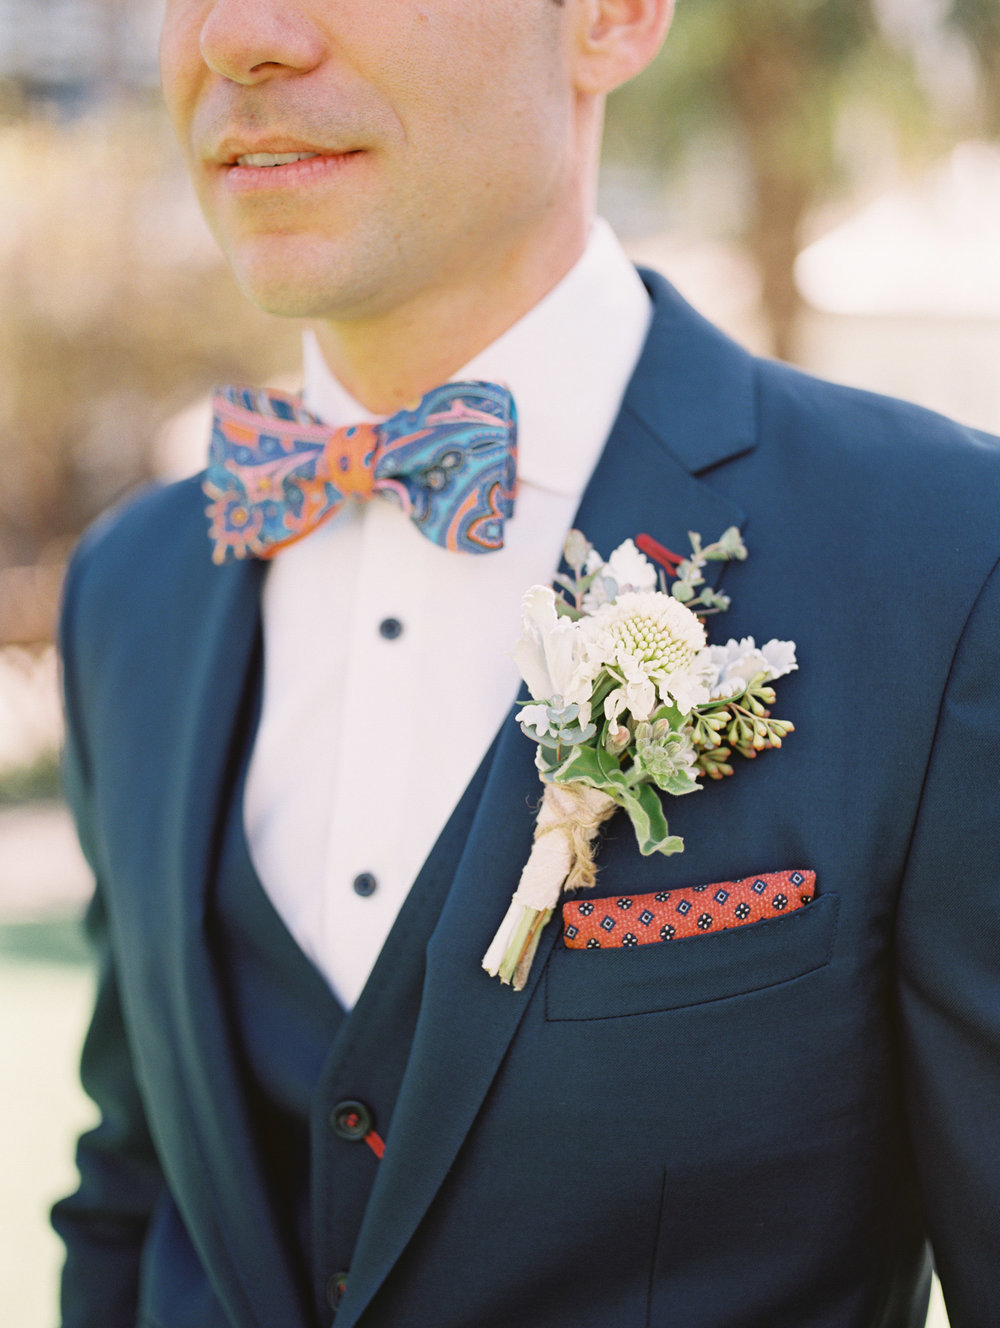 samesexwedding-24.jpg